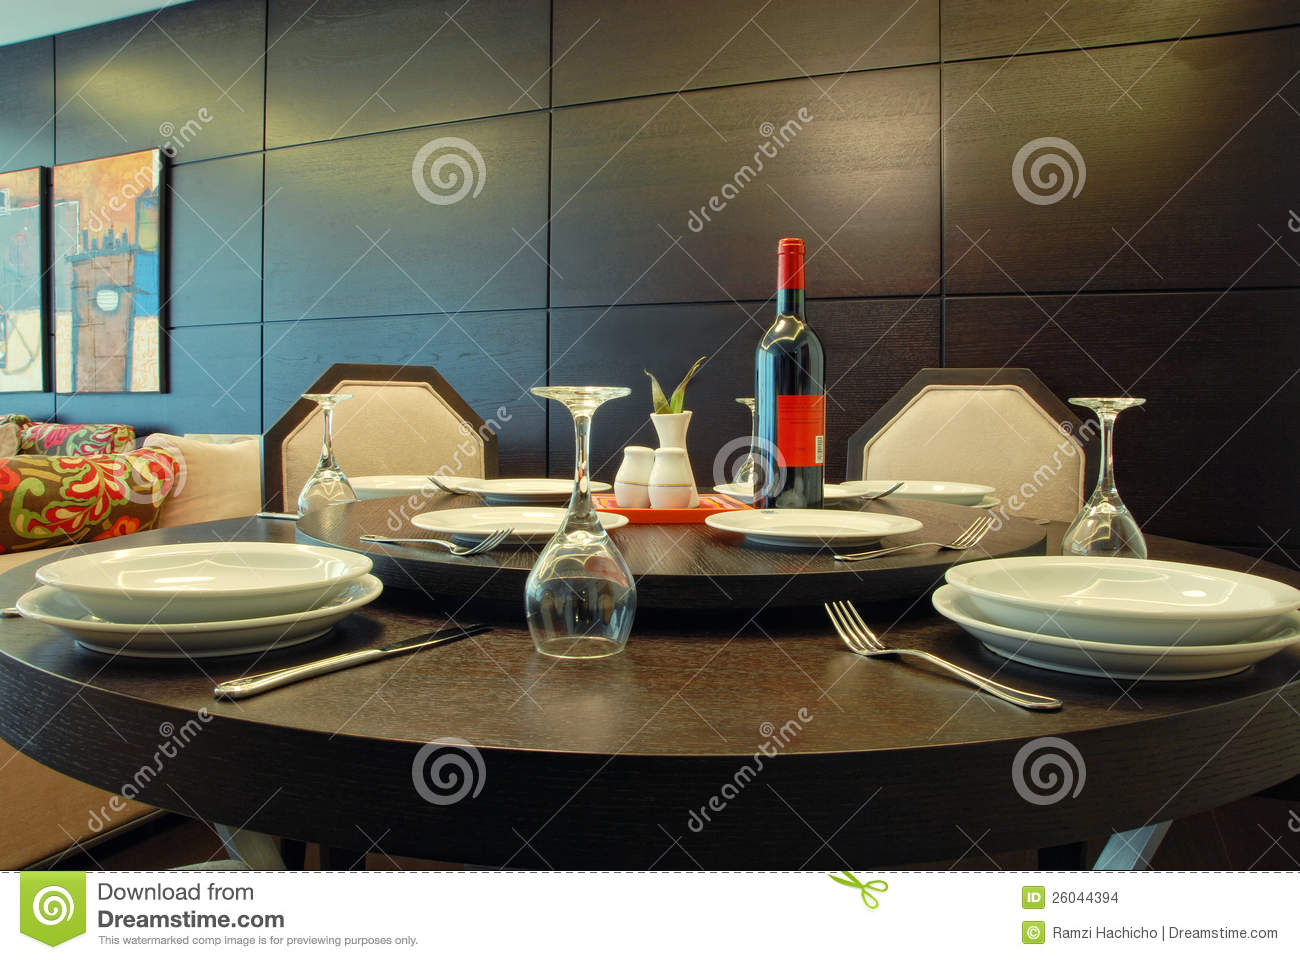 table arrangement in an expensive haute cuisine restaurant stock images image 26044394. Black Bedroom Furniture Sets. Home Design Ideas